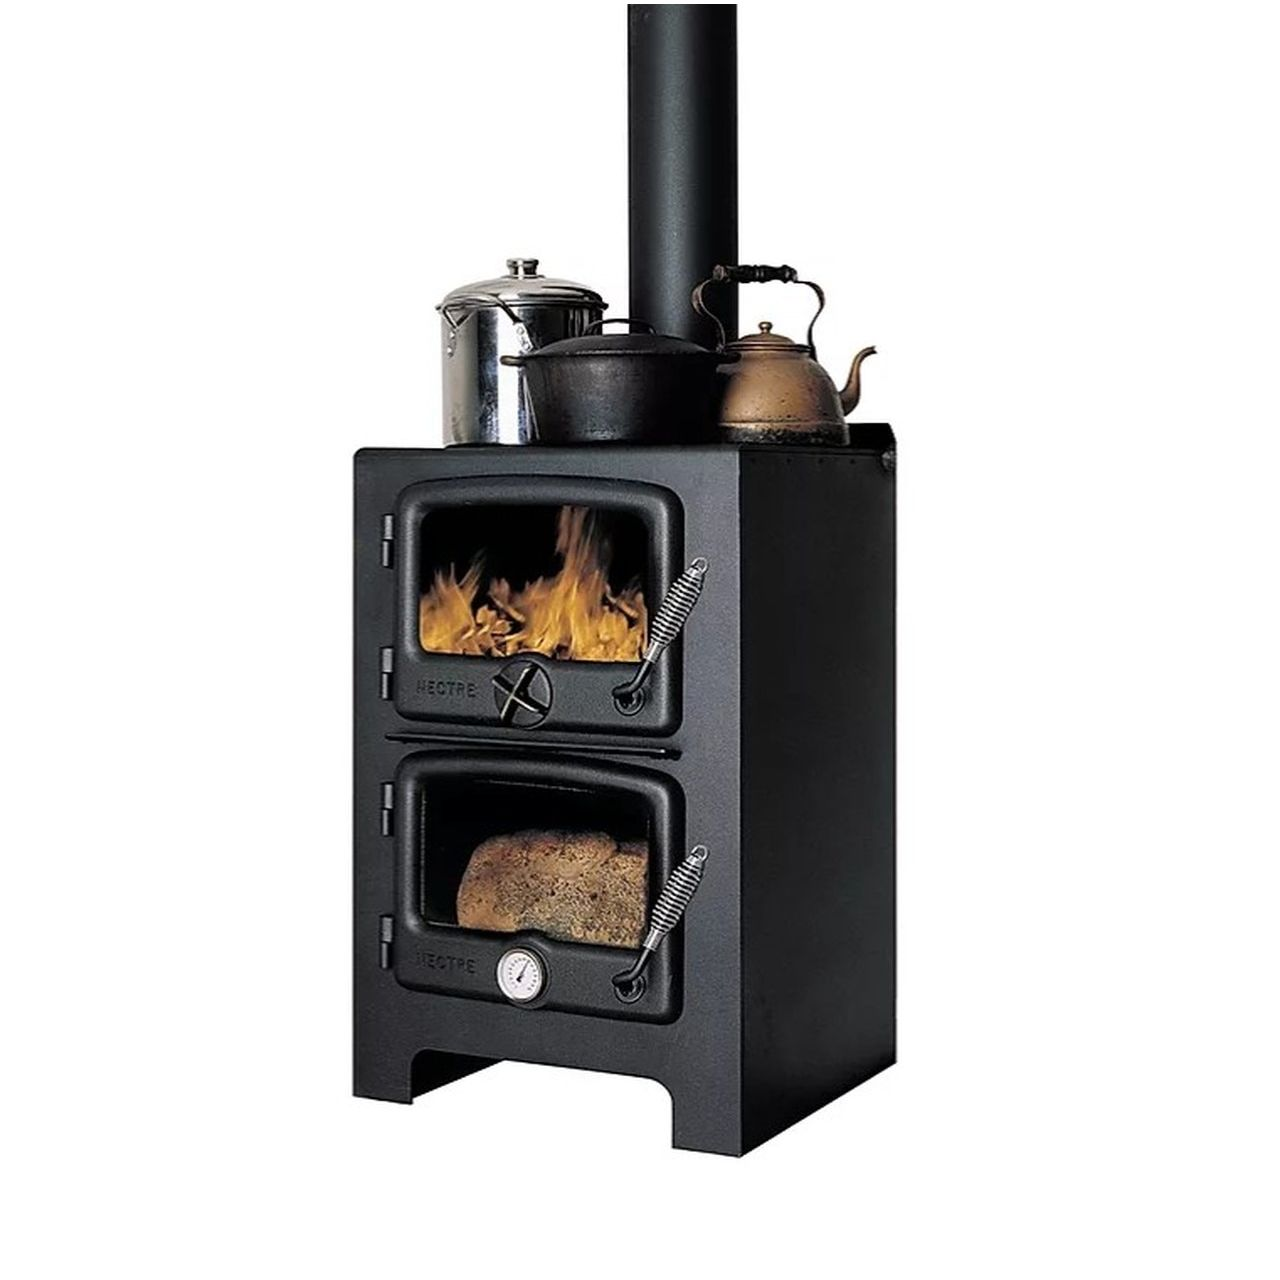 Nectre N350W 30000 BTU Wood-Fired Oven With Water Jacket